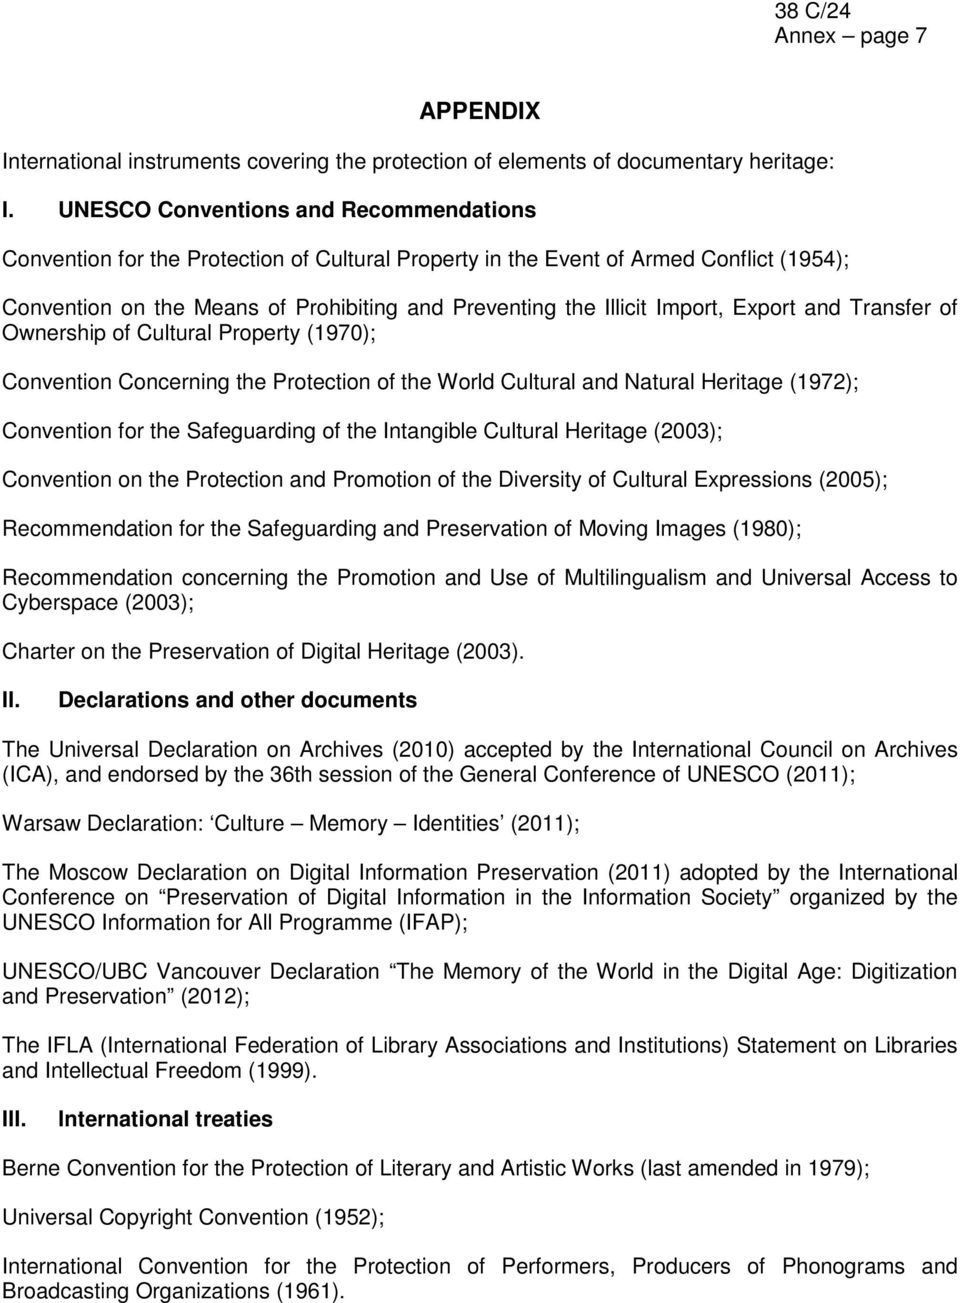 Import, Export and Transfer of Ownership of Cultural Property (1970); Convention Concerning the Protection of the World Cultural and Natural Heritage (1972); Convention for the Safeguarding of the